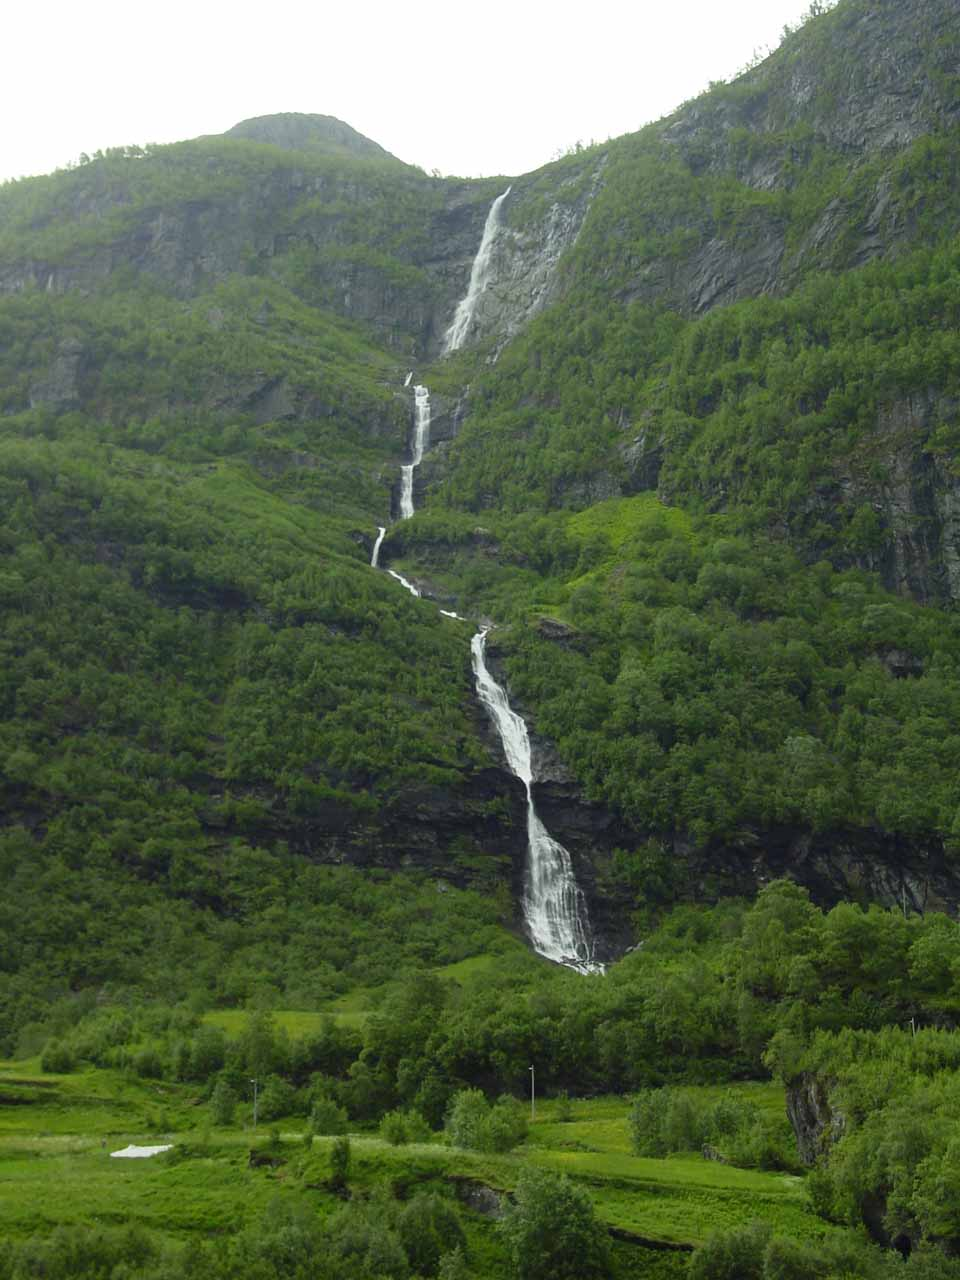 Another look at Tunnshellefossen, but this time it was from the road